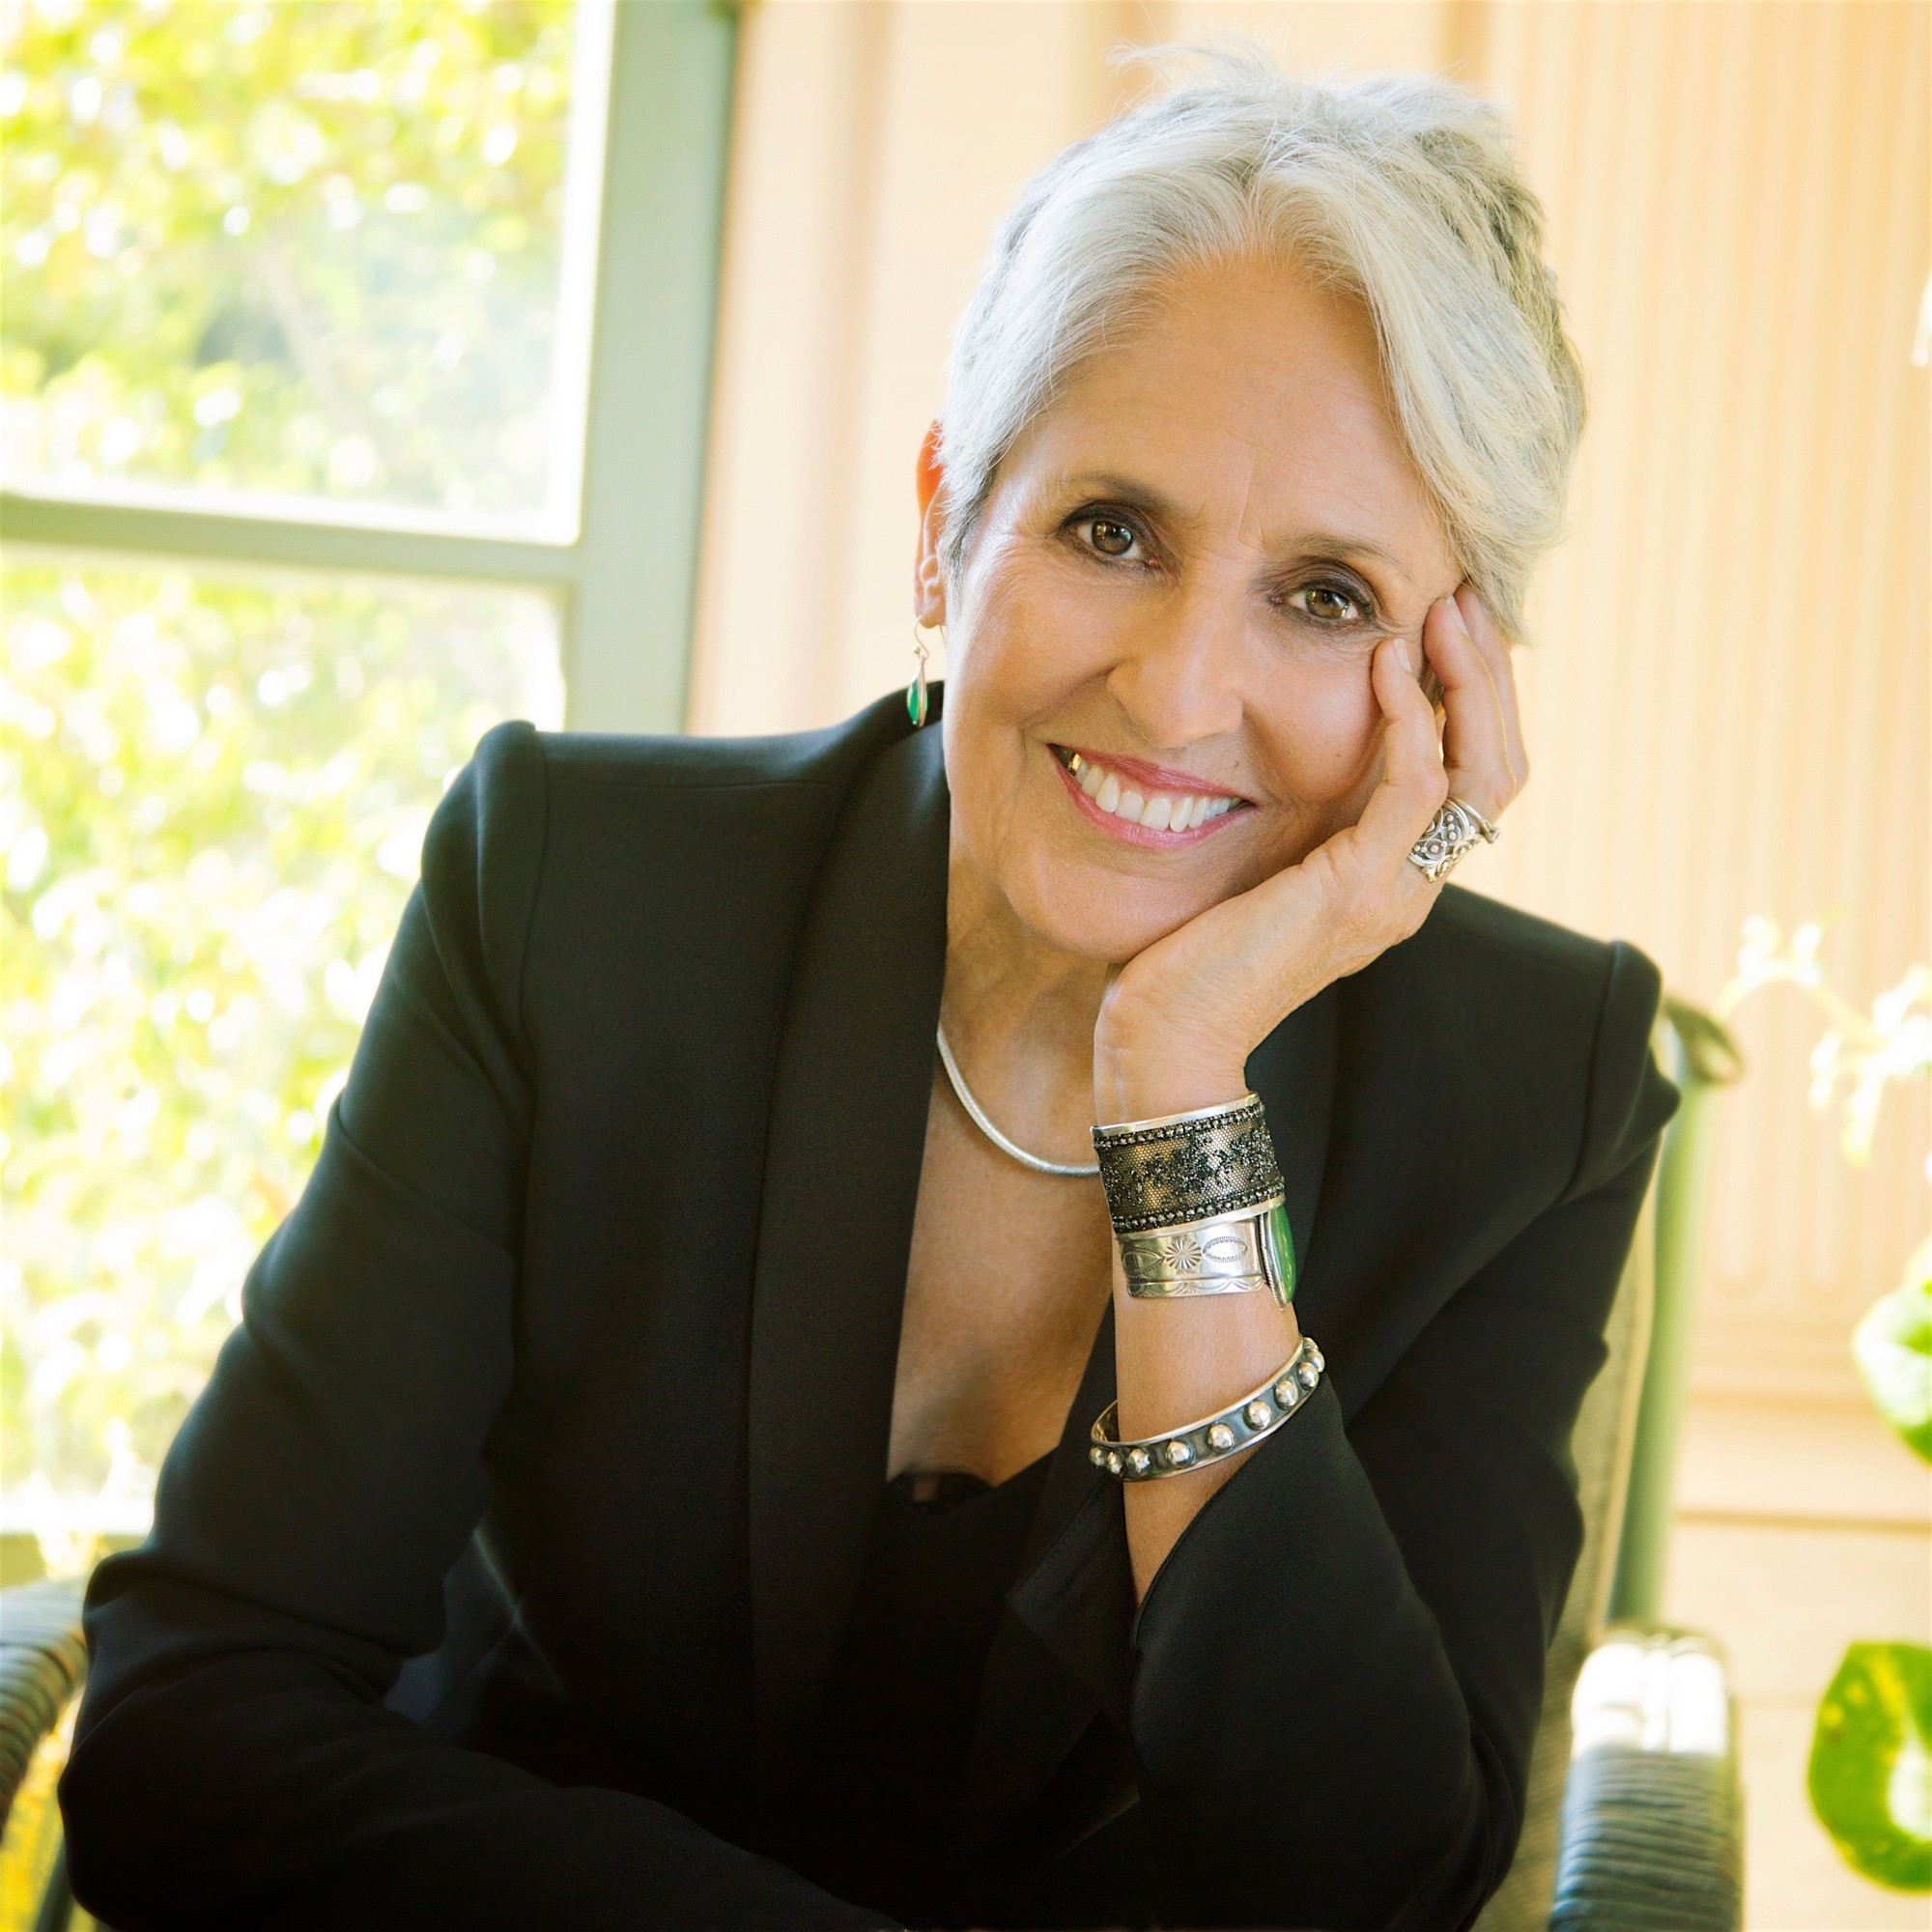 Joan Baez The Legendary Queen Of Folk And Activist Latintrends Informs Entertains Inspires The Community Your Source For Latin Culture Entertainment And Daily Inspiration